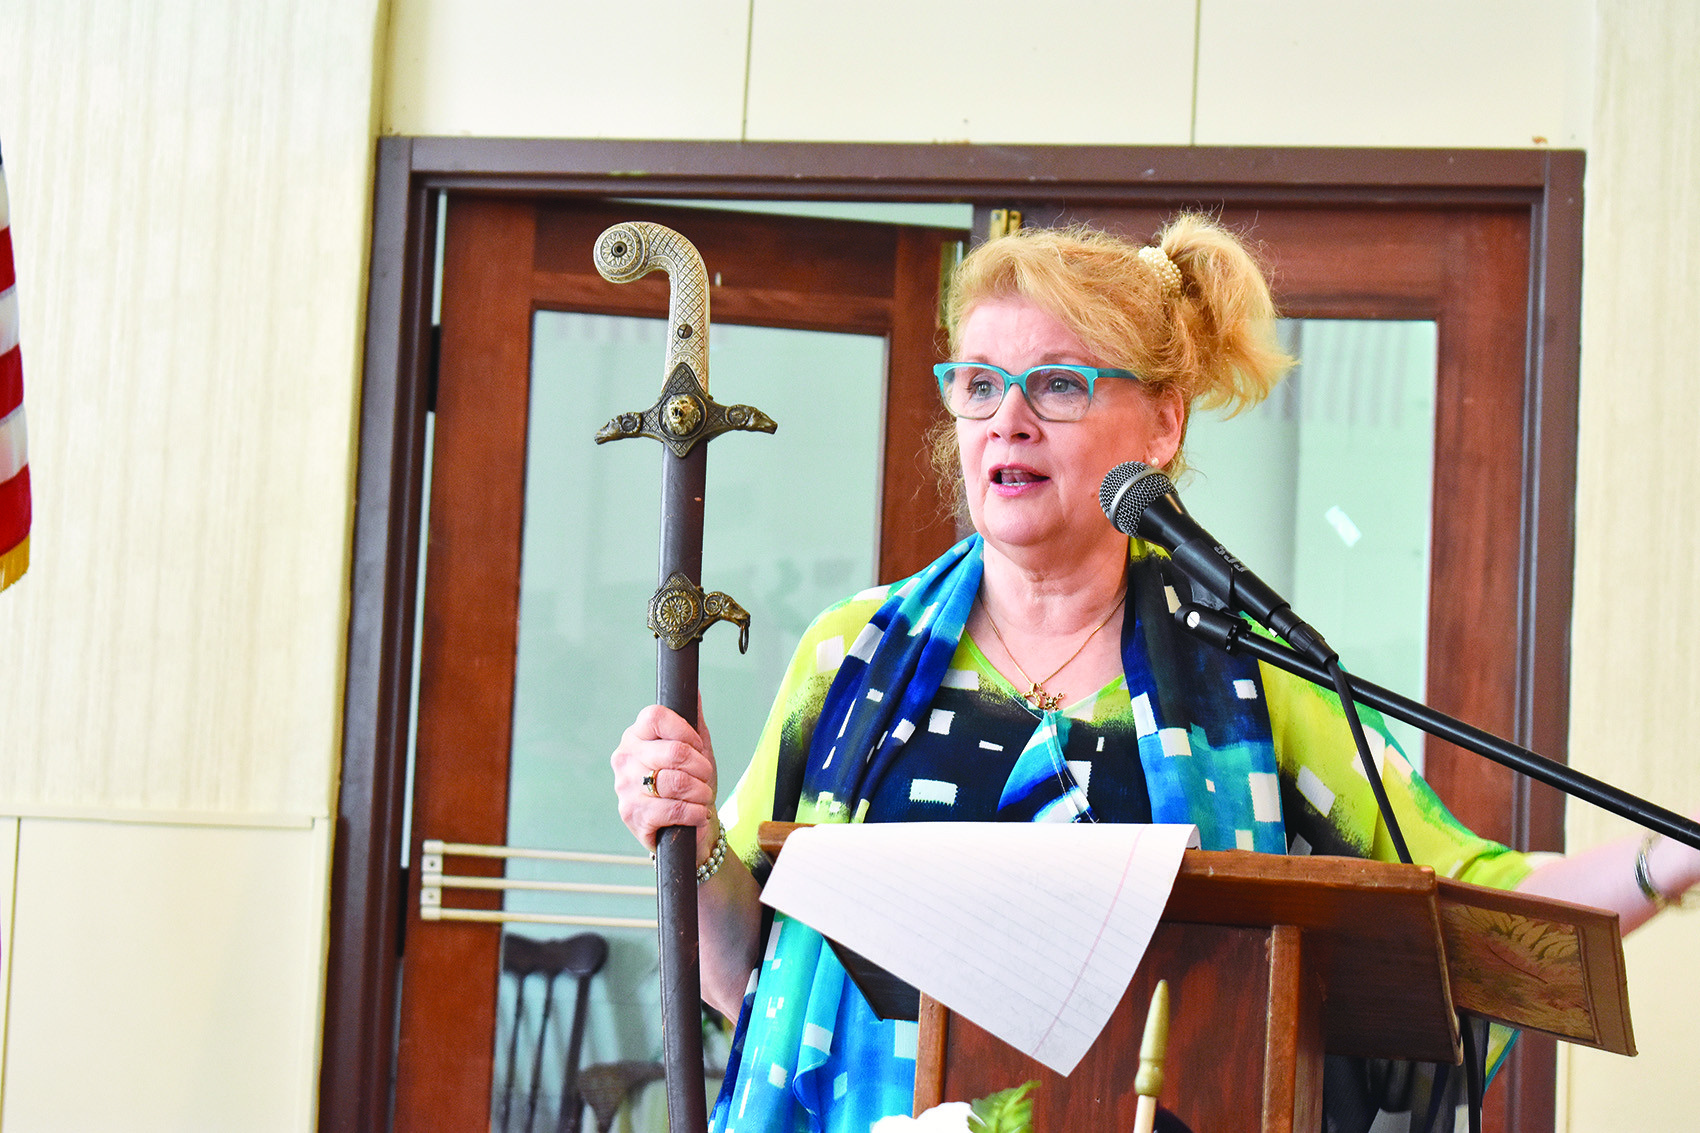 Author Edie Hand holds a sword that helped give her inspiration when she thought about giving up on life during a speech to the Merry Hearts of Northside Baptist Church on Tuesday.